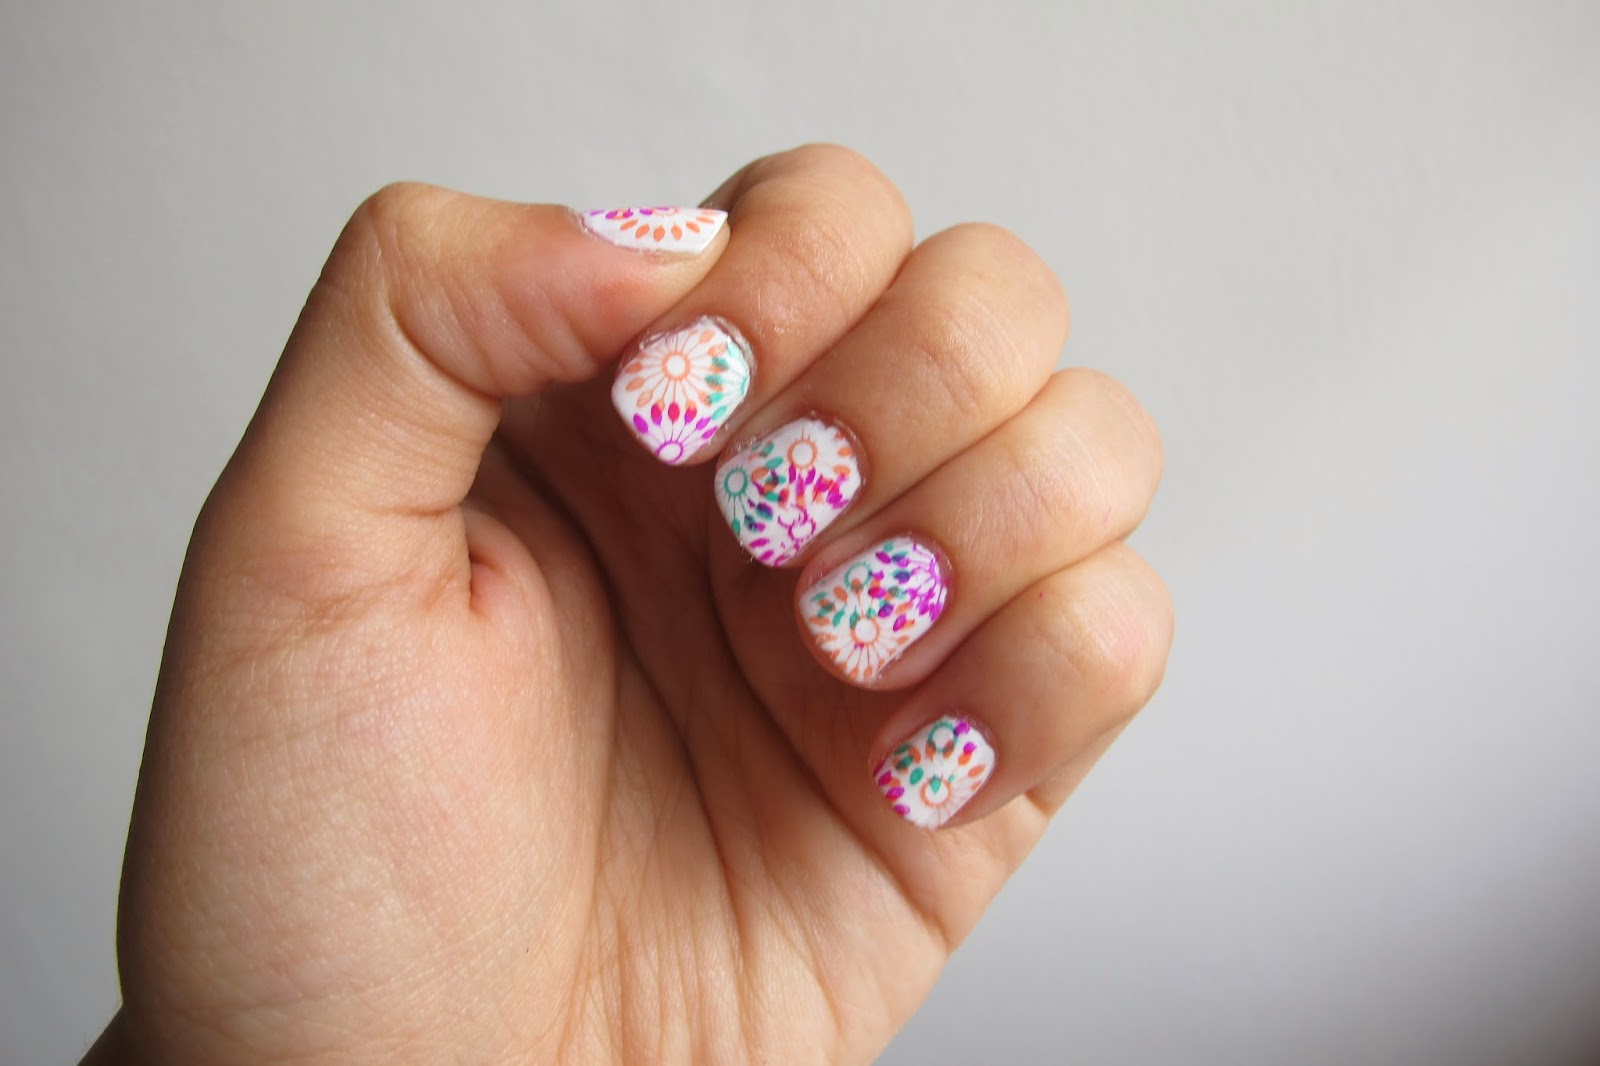 Nail Stamping Kit Review